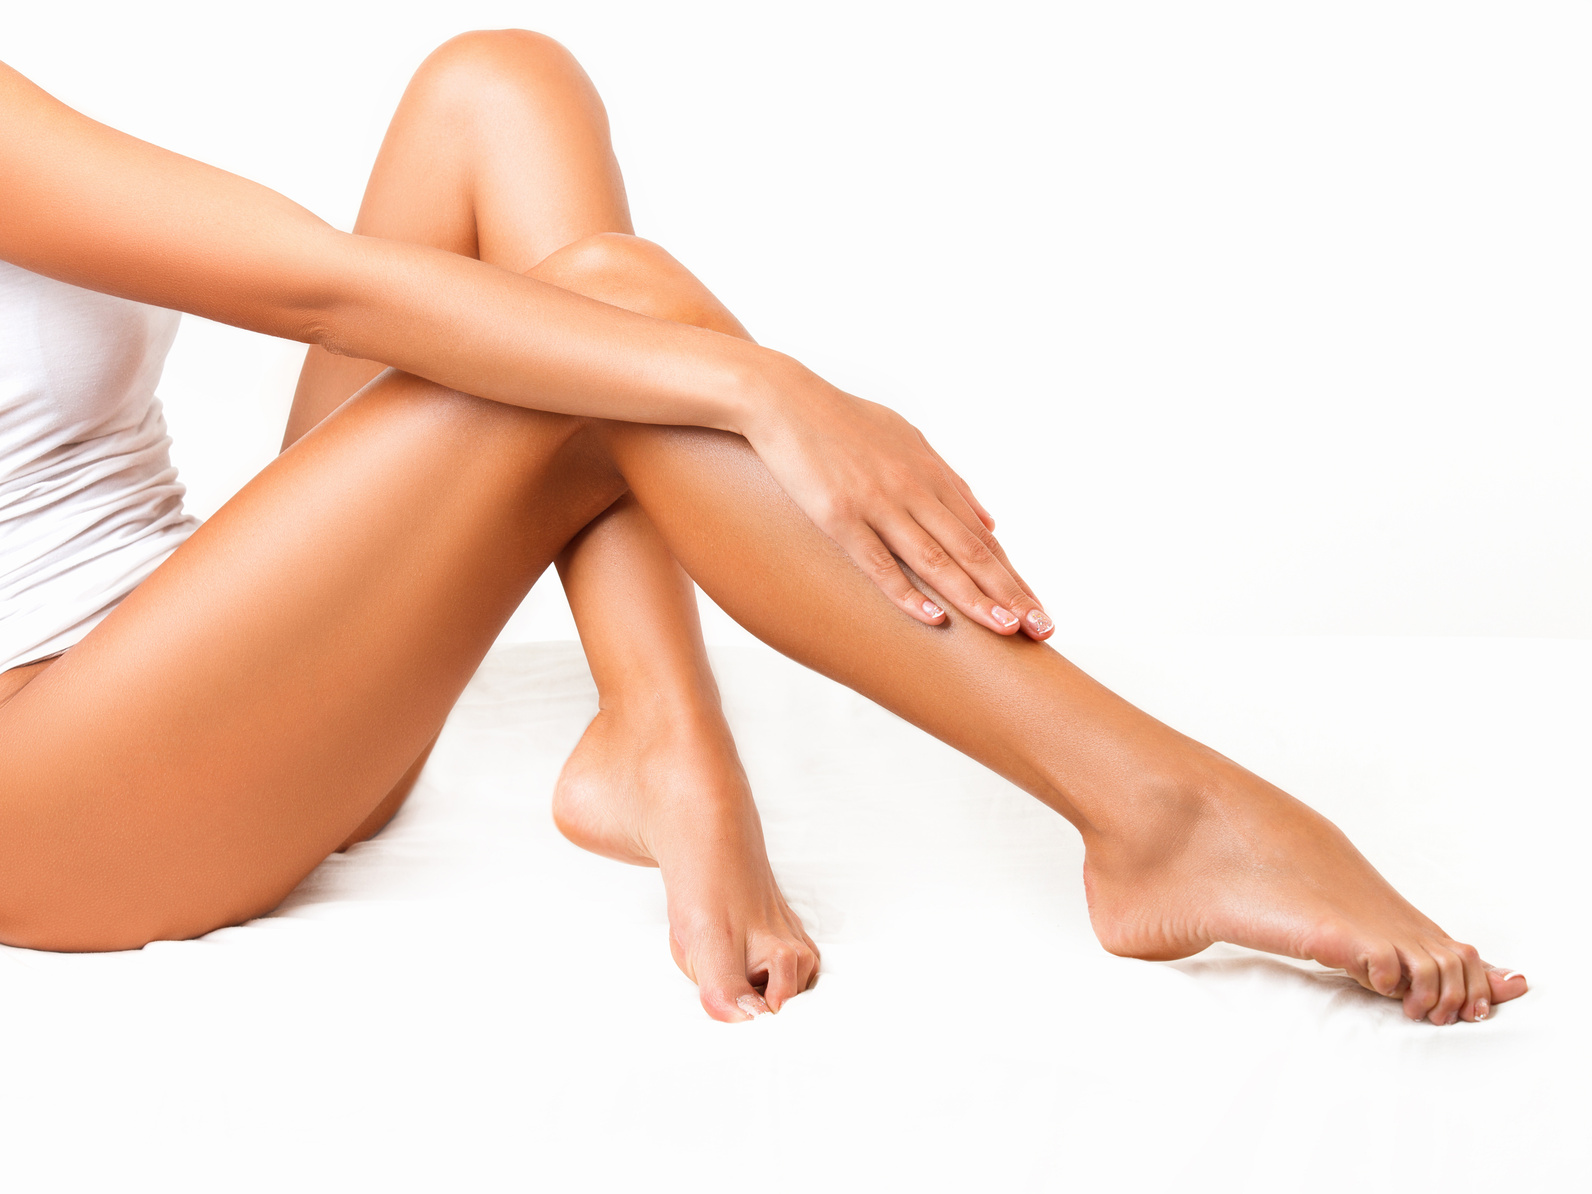 Facial & Body Waxing  - Tired of shaving every three days...? Who isn't! Maybe its time to start waxing. Unlike shaving, waxing semi-permanently removes the hair from the root and can last up to 6-weeks.Schedule your next appointment with Brushes of Beauty today. We offer waxing services for brows, lip, chin, face, underarms, half/full arms, half/full legs and bikini area.